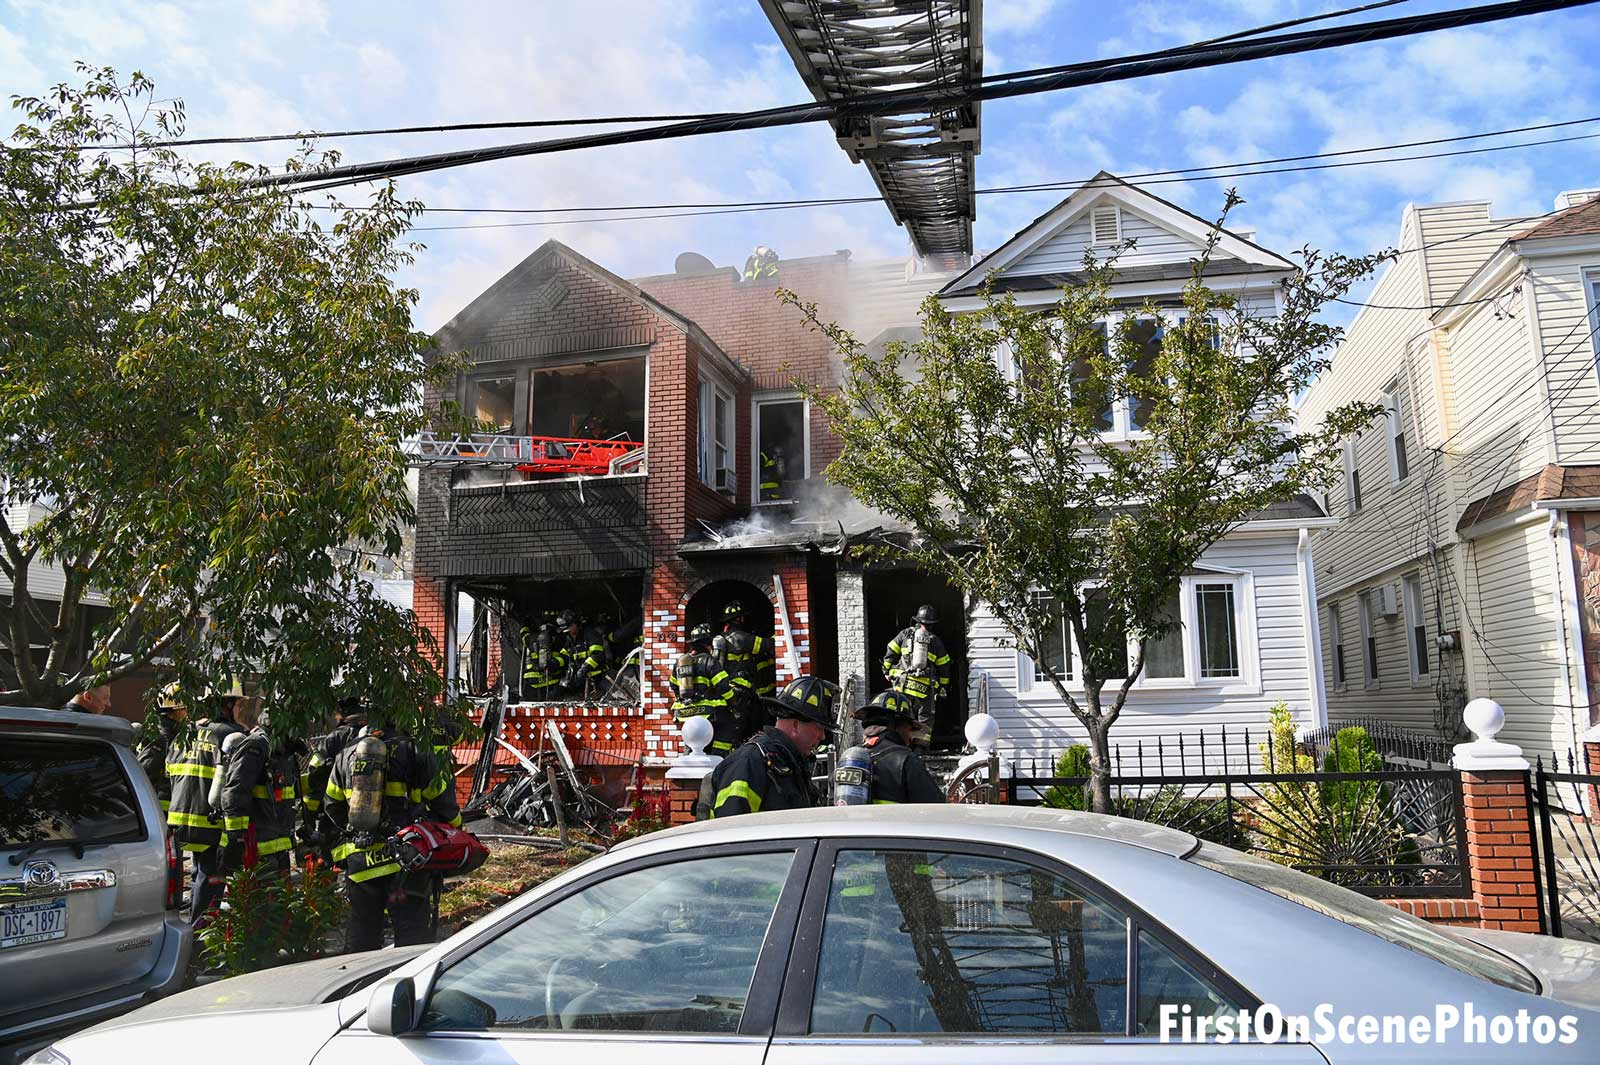 FDNY firefighters at scene of fire in Queens